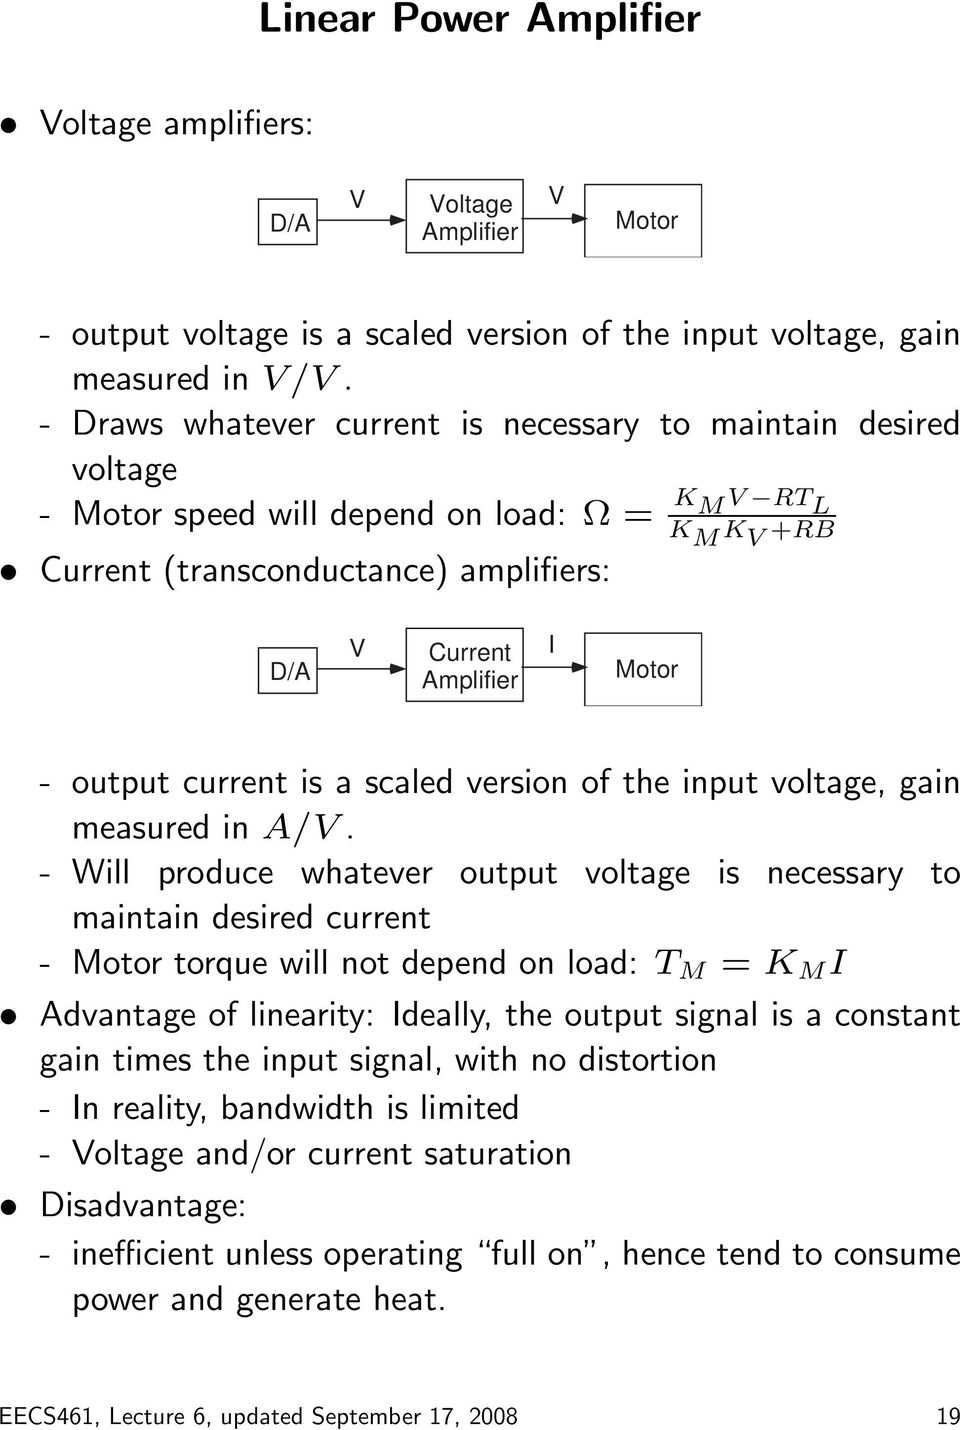 - output current is a scaled version of the input voltage, gain measured in A/V.